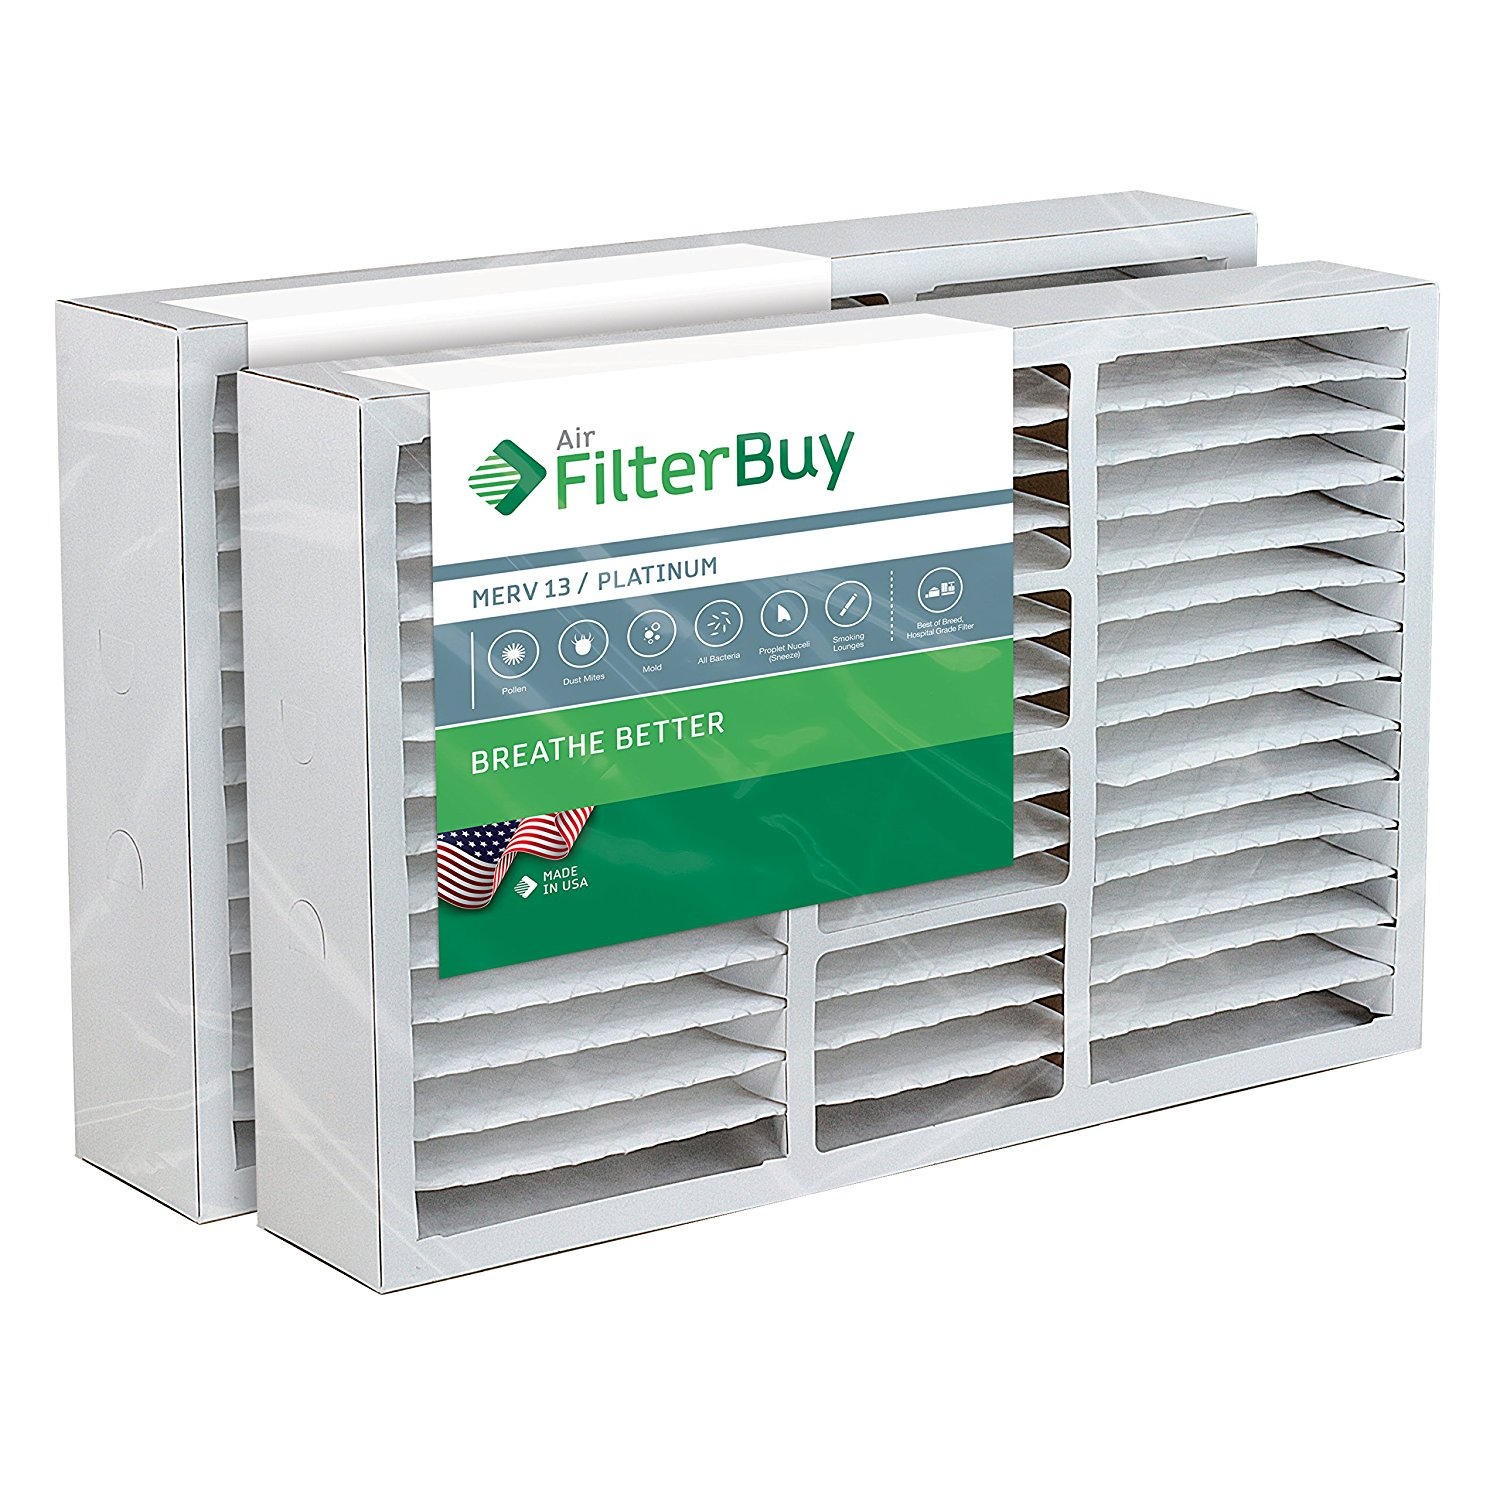 FilterBuy 16x25x5 Goodman Replacement AC Furnace Air Filters - AFB Platinum MERV 13 - Pack of 2 Filters. Designed to replace FS1625, M1-1056, MU1625, 9183950.